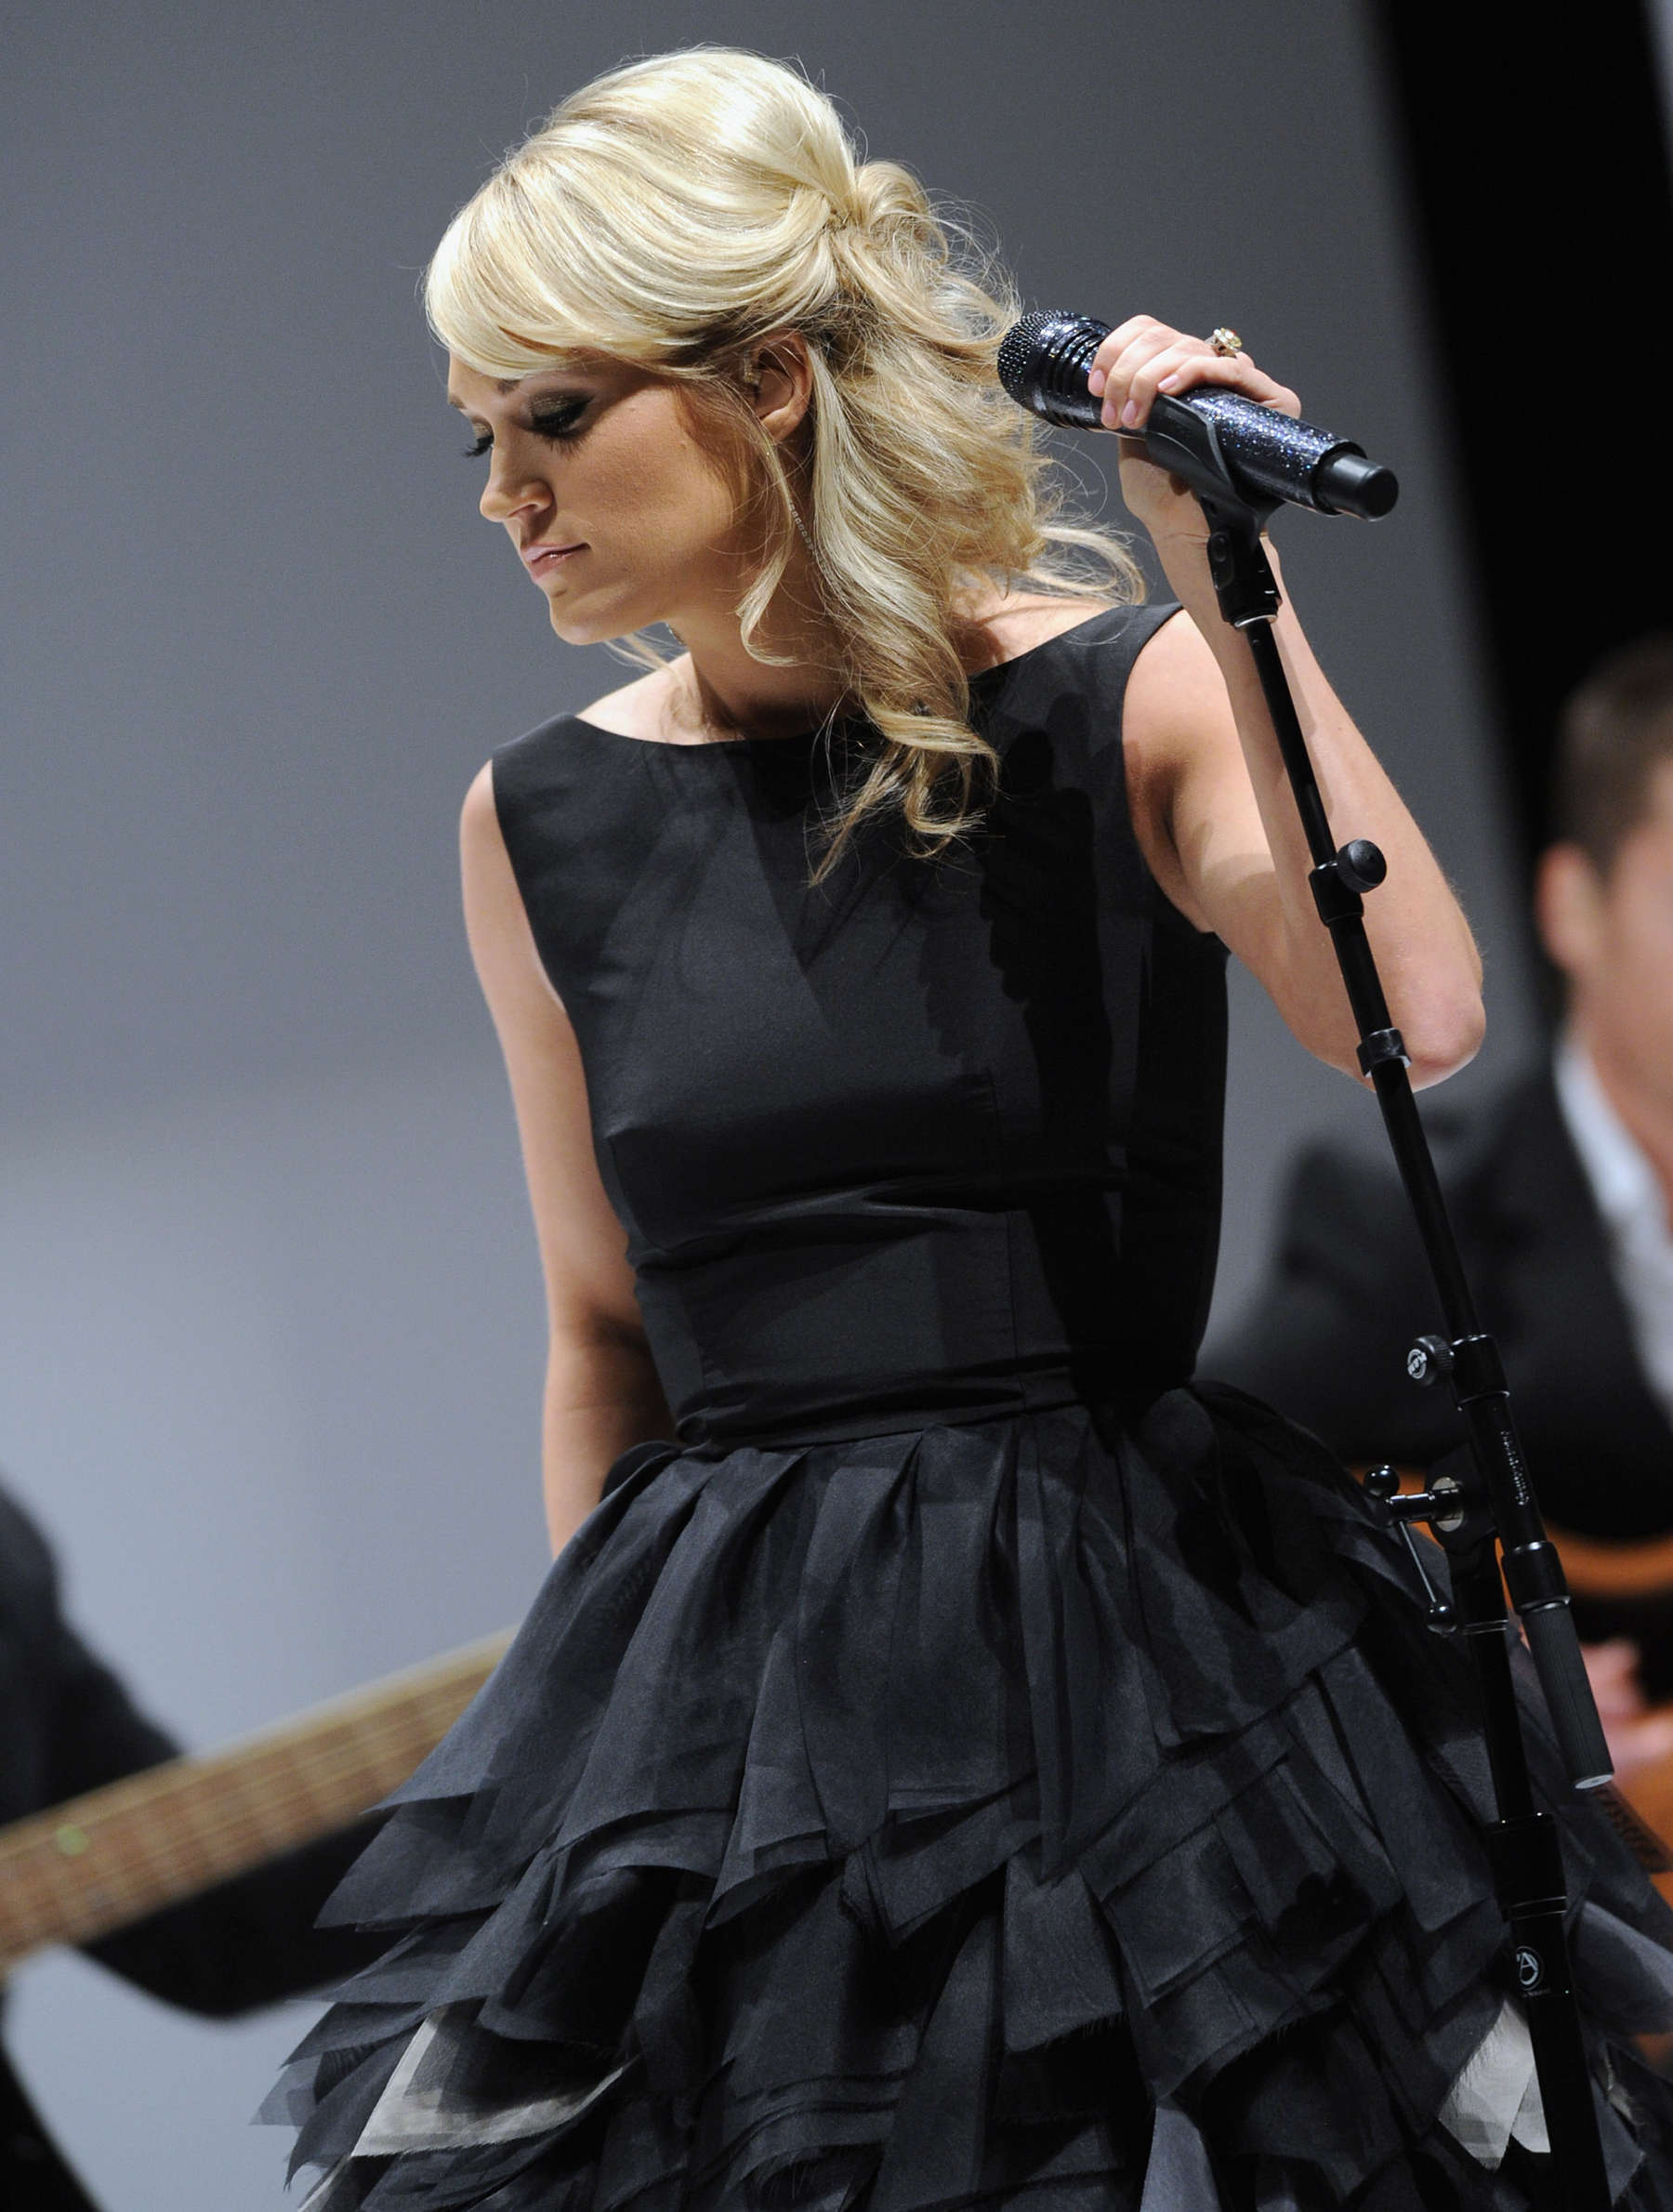 Carrie Underwood Cleavage At Fashion Show In Nashvil 04